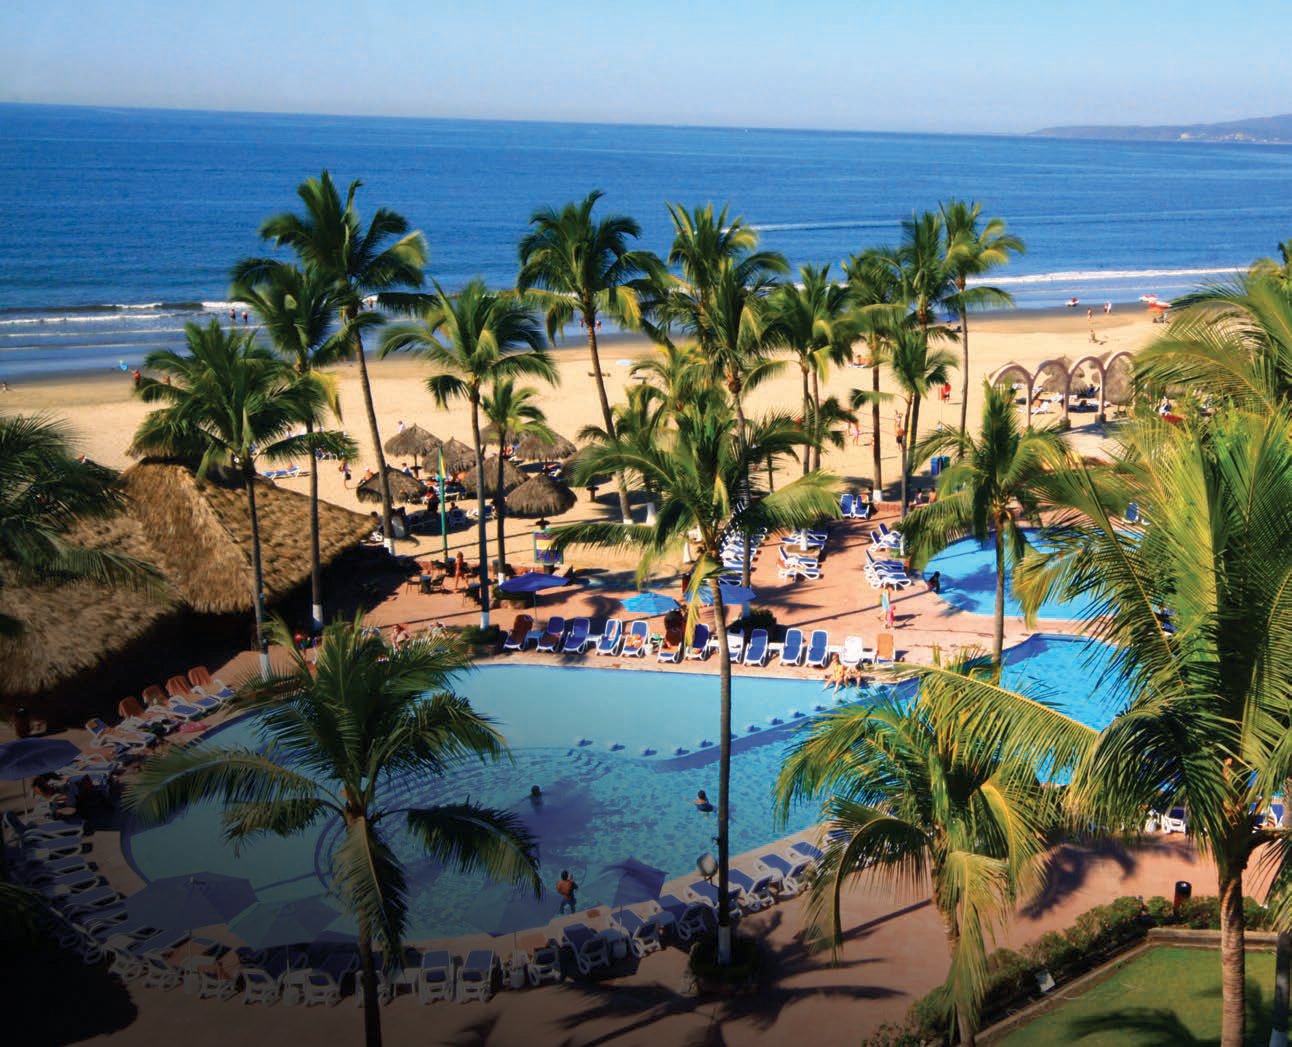 The 274-room Occidental Grand Nuevo Vallarta is located on Bahía de Banderas, a beautiful stretch of sand on the Pacific coast.